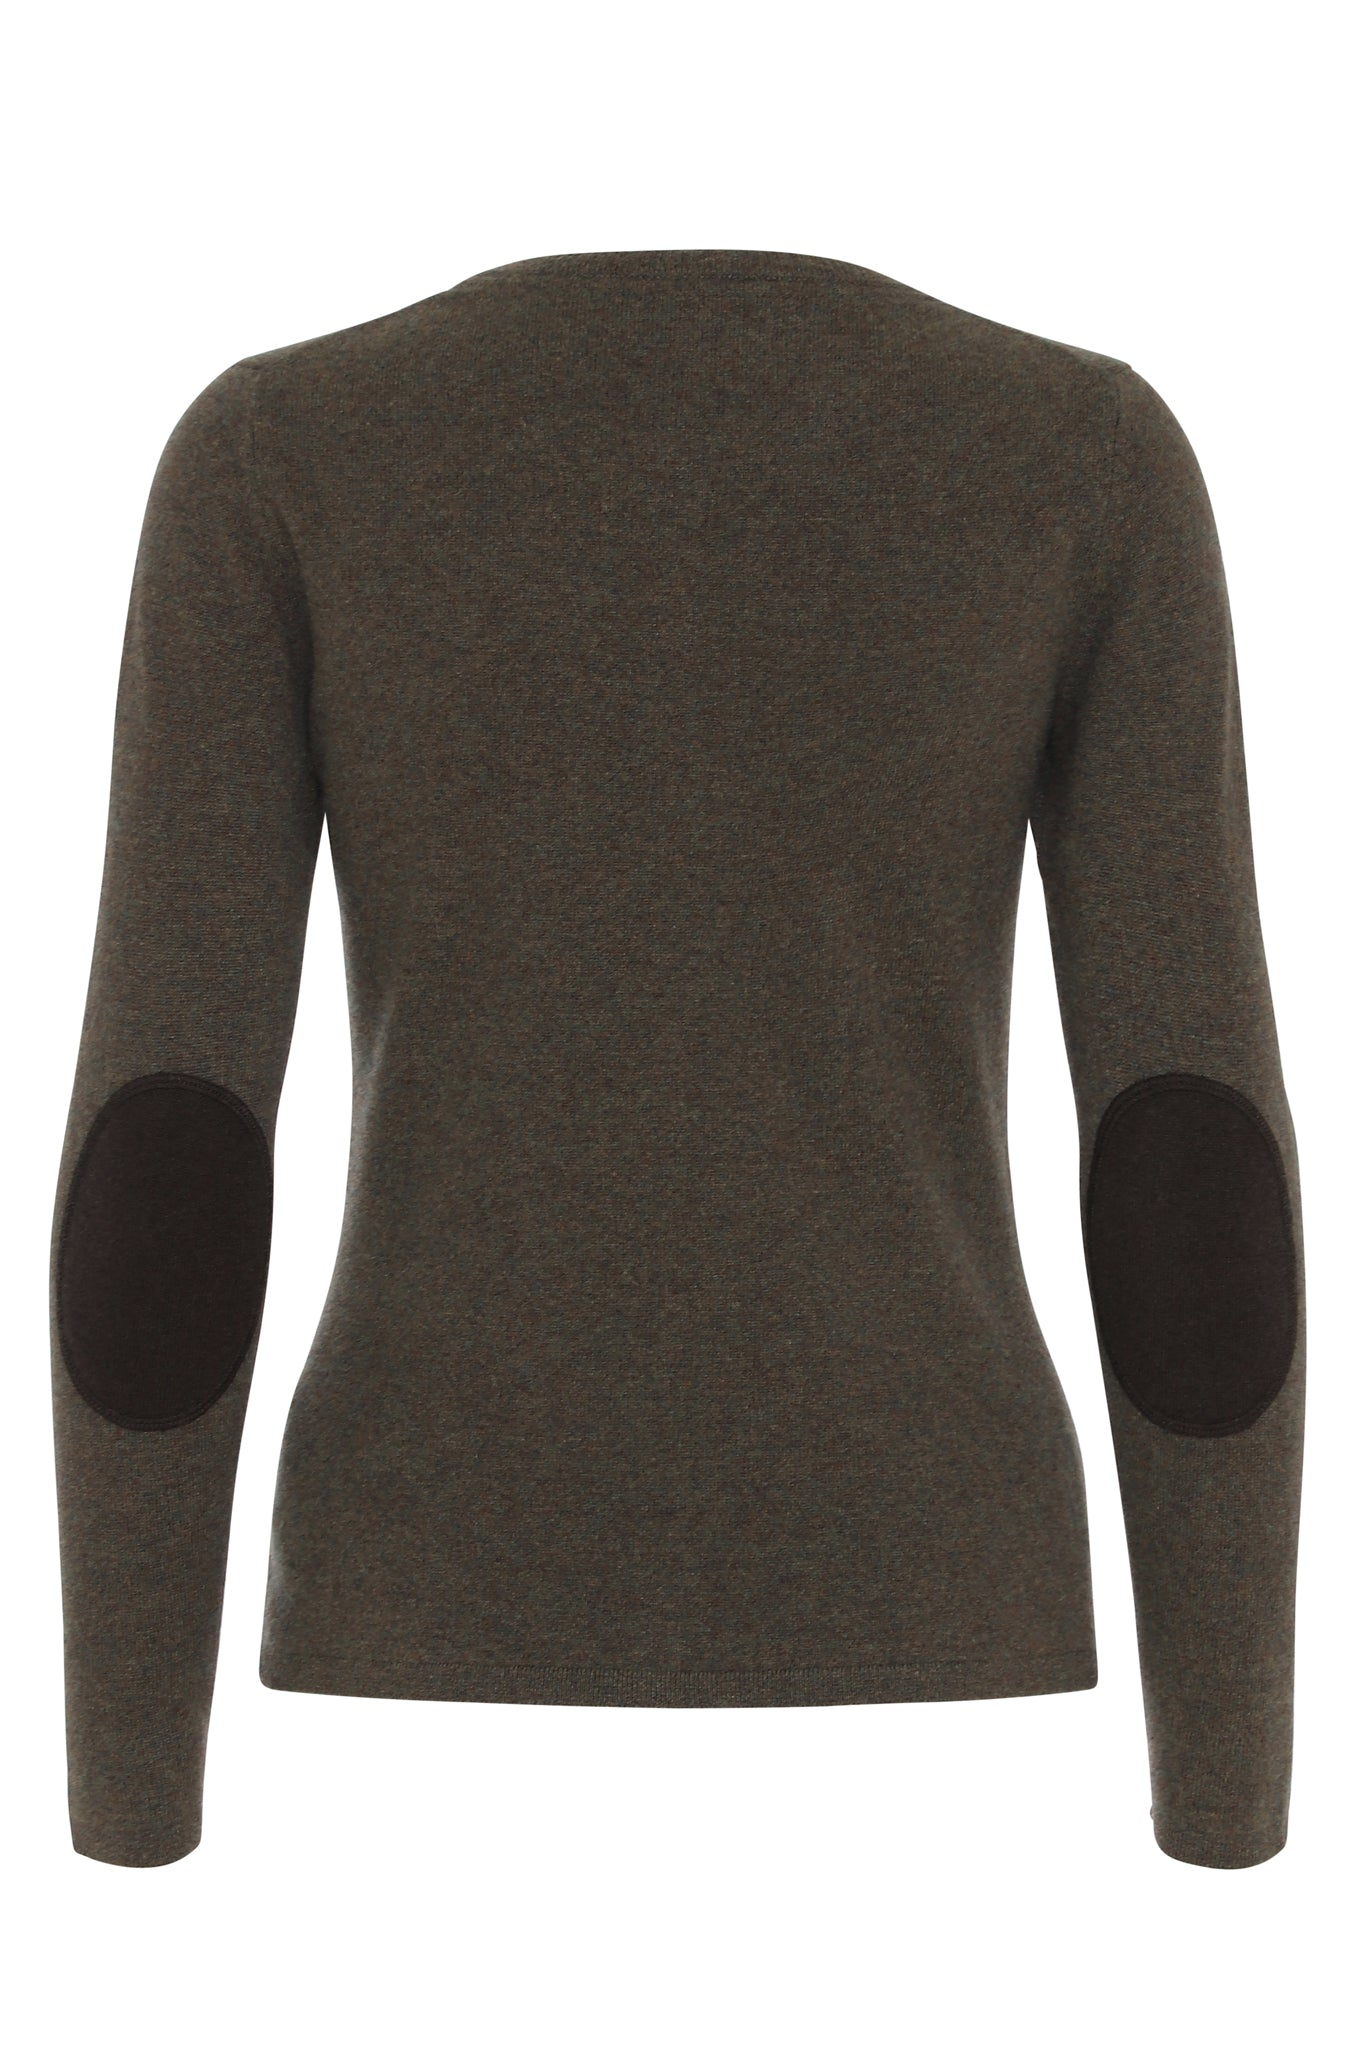 Alexia - cashmere cardigan - Forrest Brown